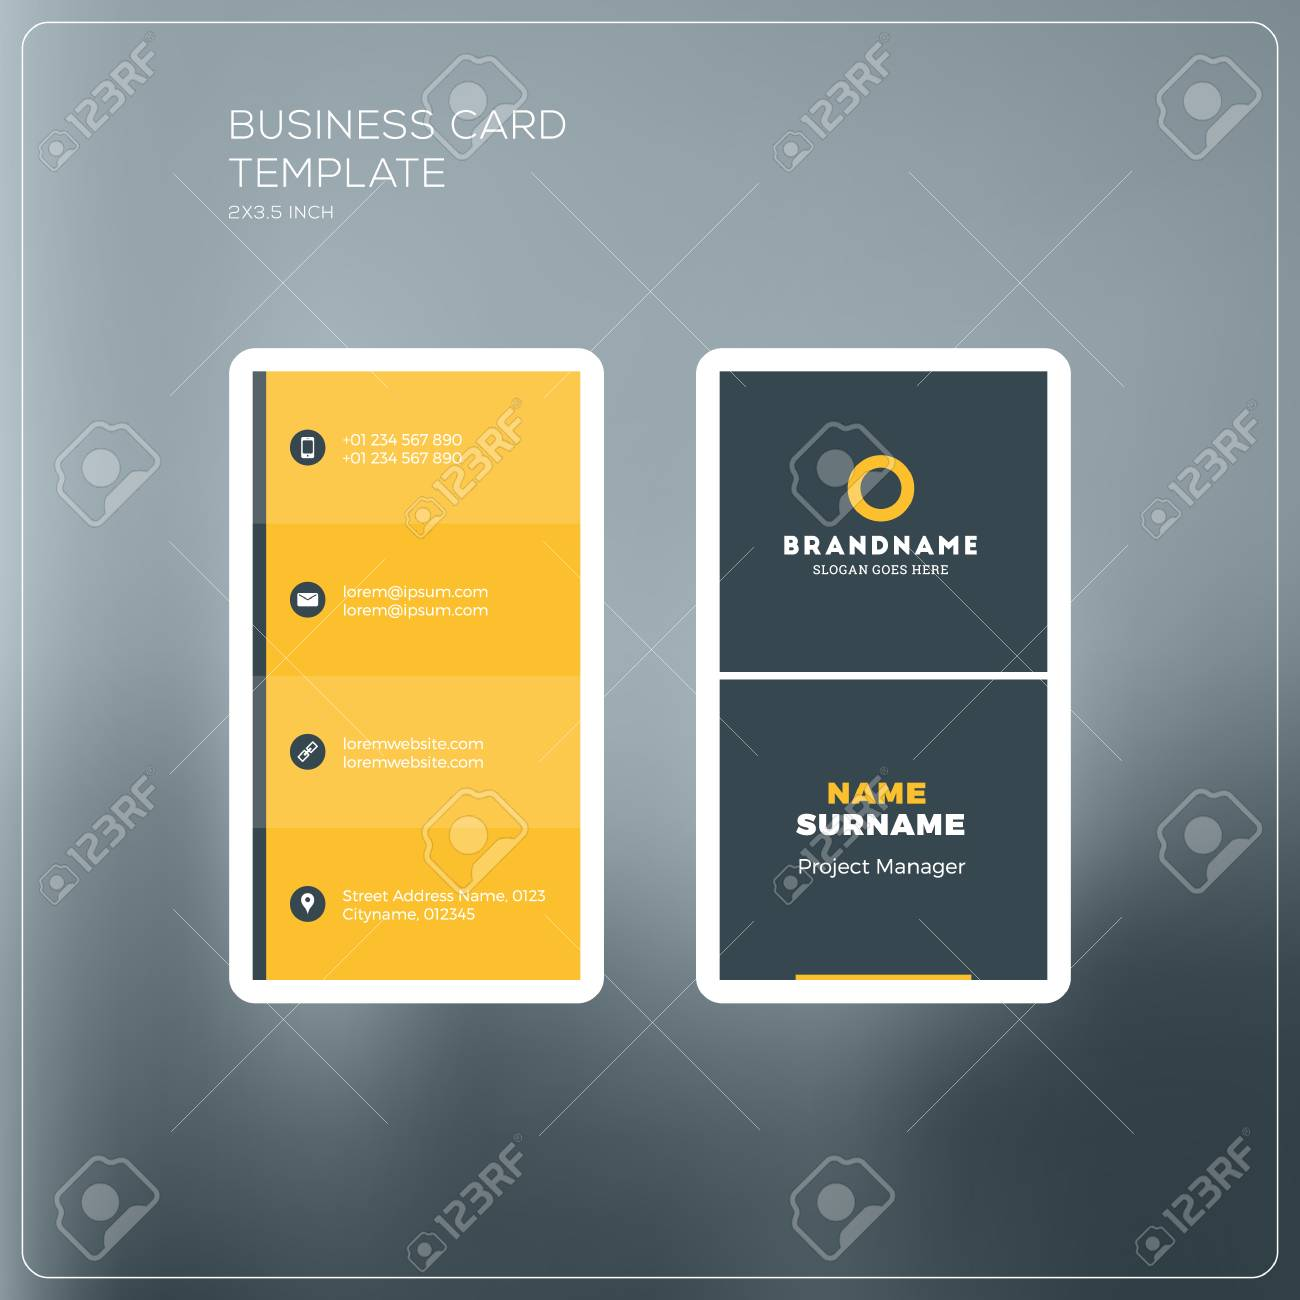 Vertical business card print template personal business card vector vertical business card print template personal business card with company logo black and yellow colors clean flat design vector illustration reheart Gallery